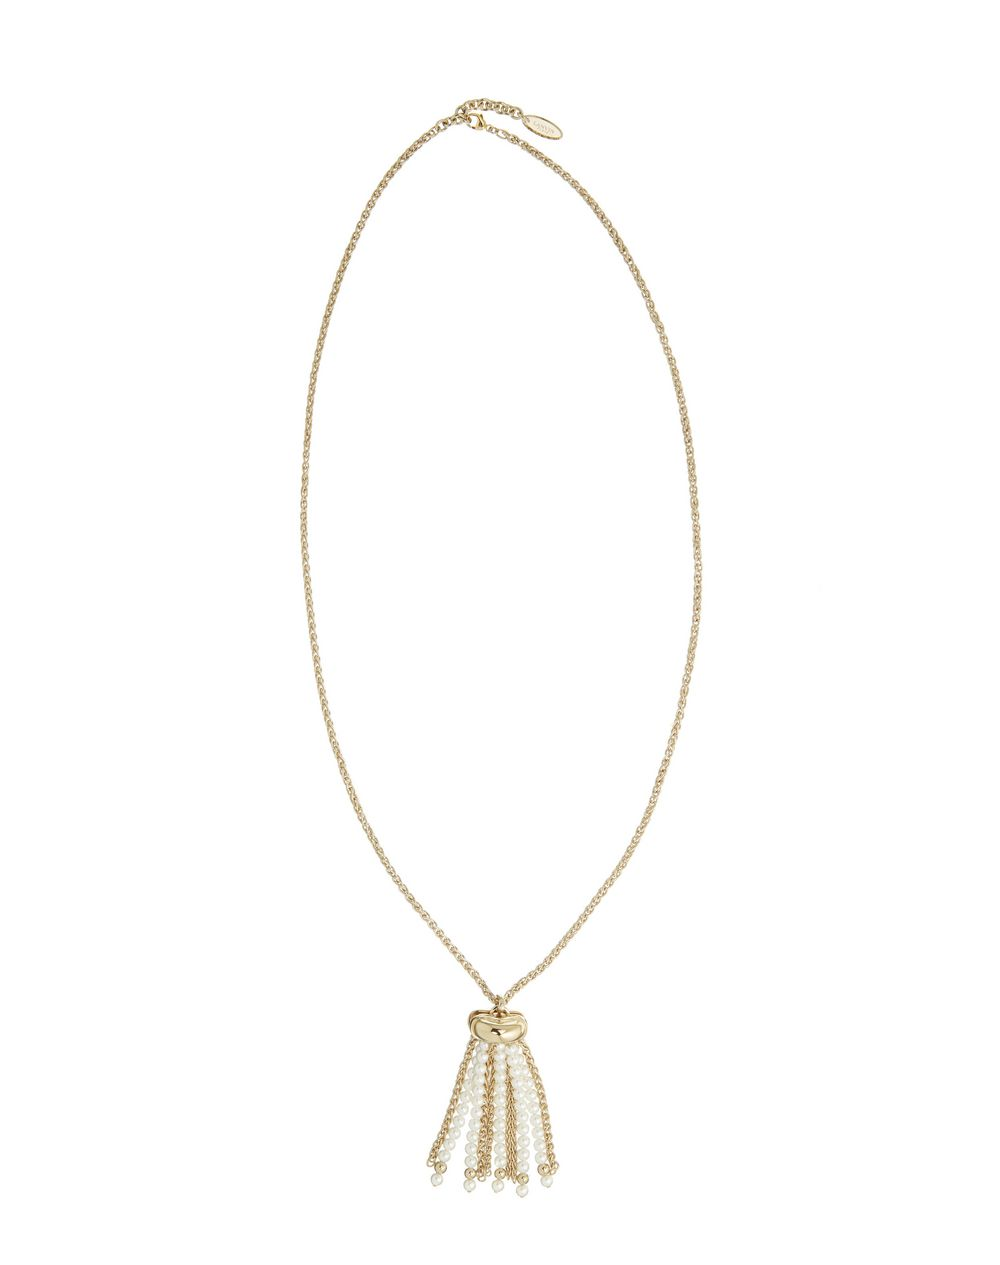 PEARL PENDANT NECKLACE - Lanvin